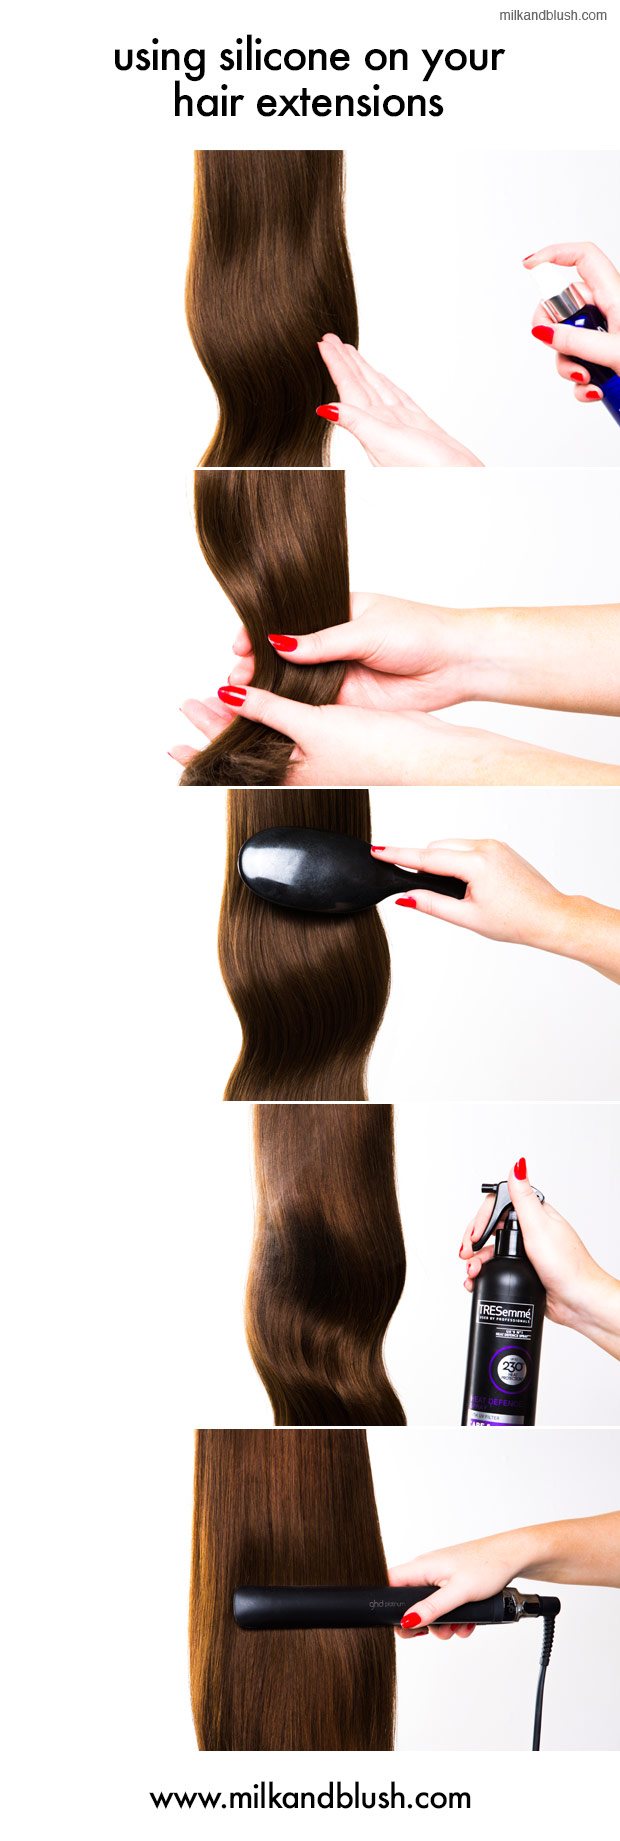 using-silicone-on-your-milk-and-blush-hair-extensions-how-to